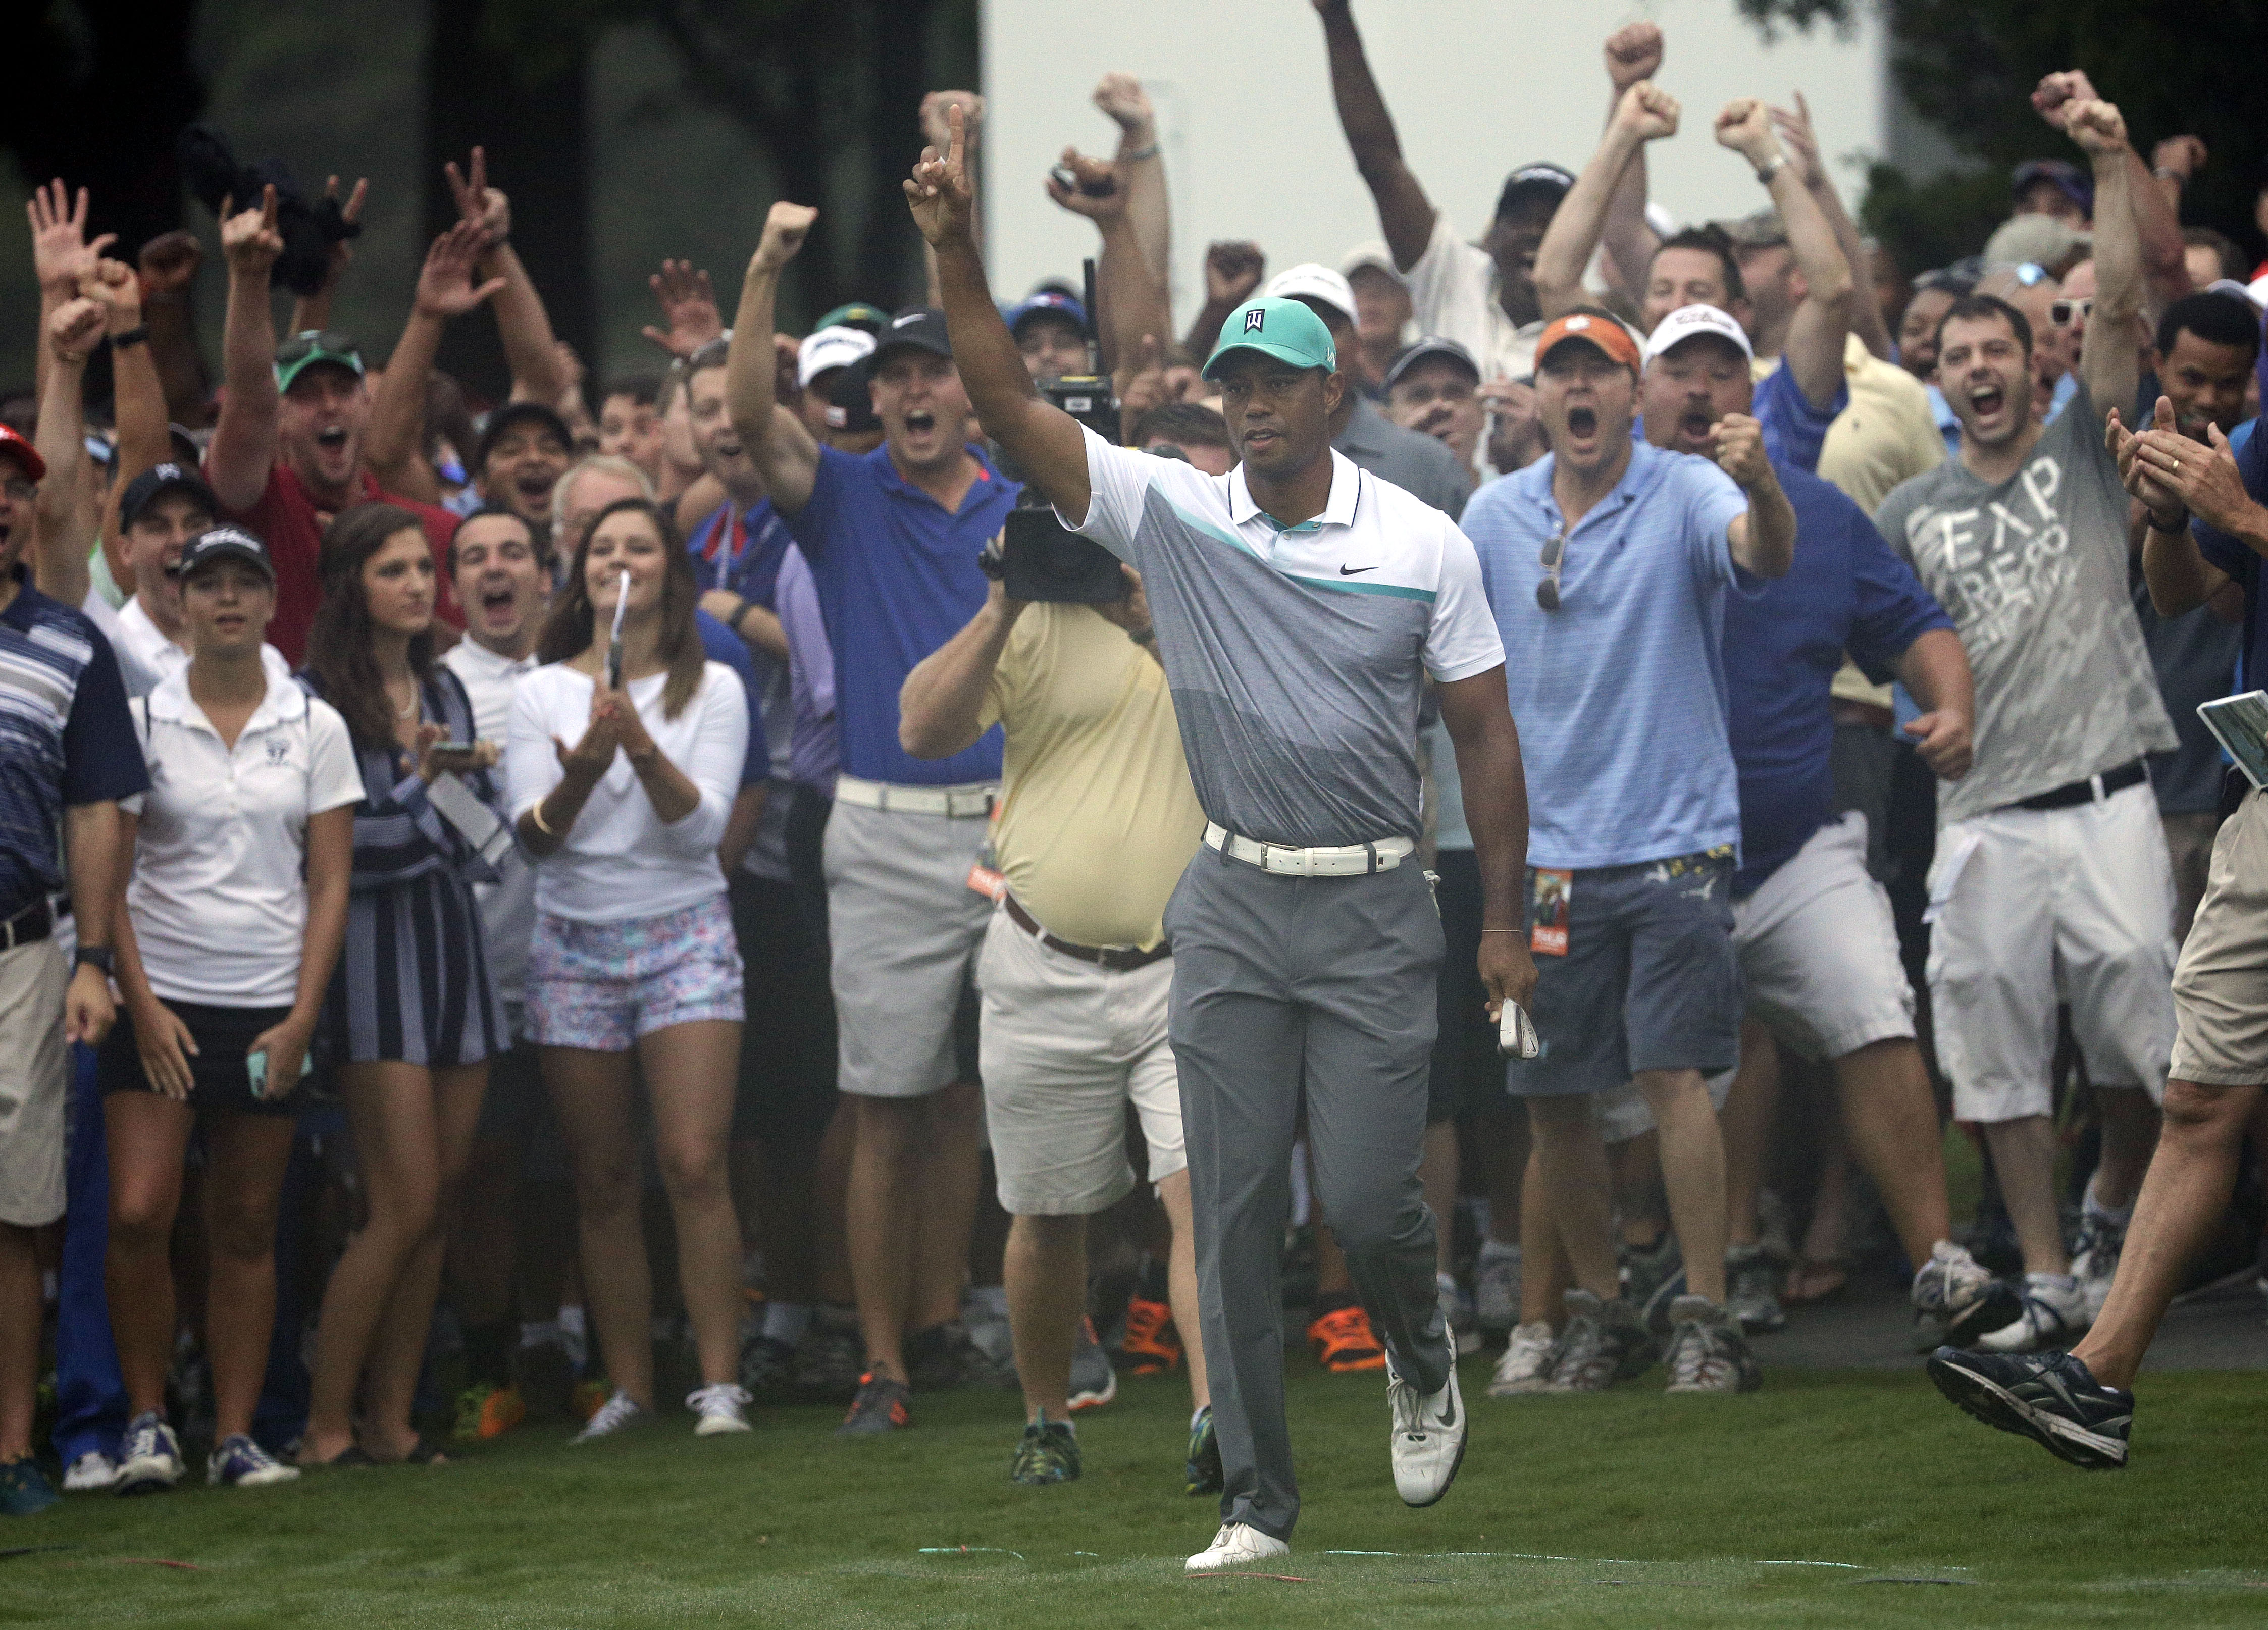 Tiger Woods reacts after holing out a chip shot on the 10th hole during the first round of the Wyndham Championship golf tournament in Greensboro, N.C., Thursday, Aug. 20, 2015. (AP Photo/Chuck Burton)